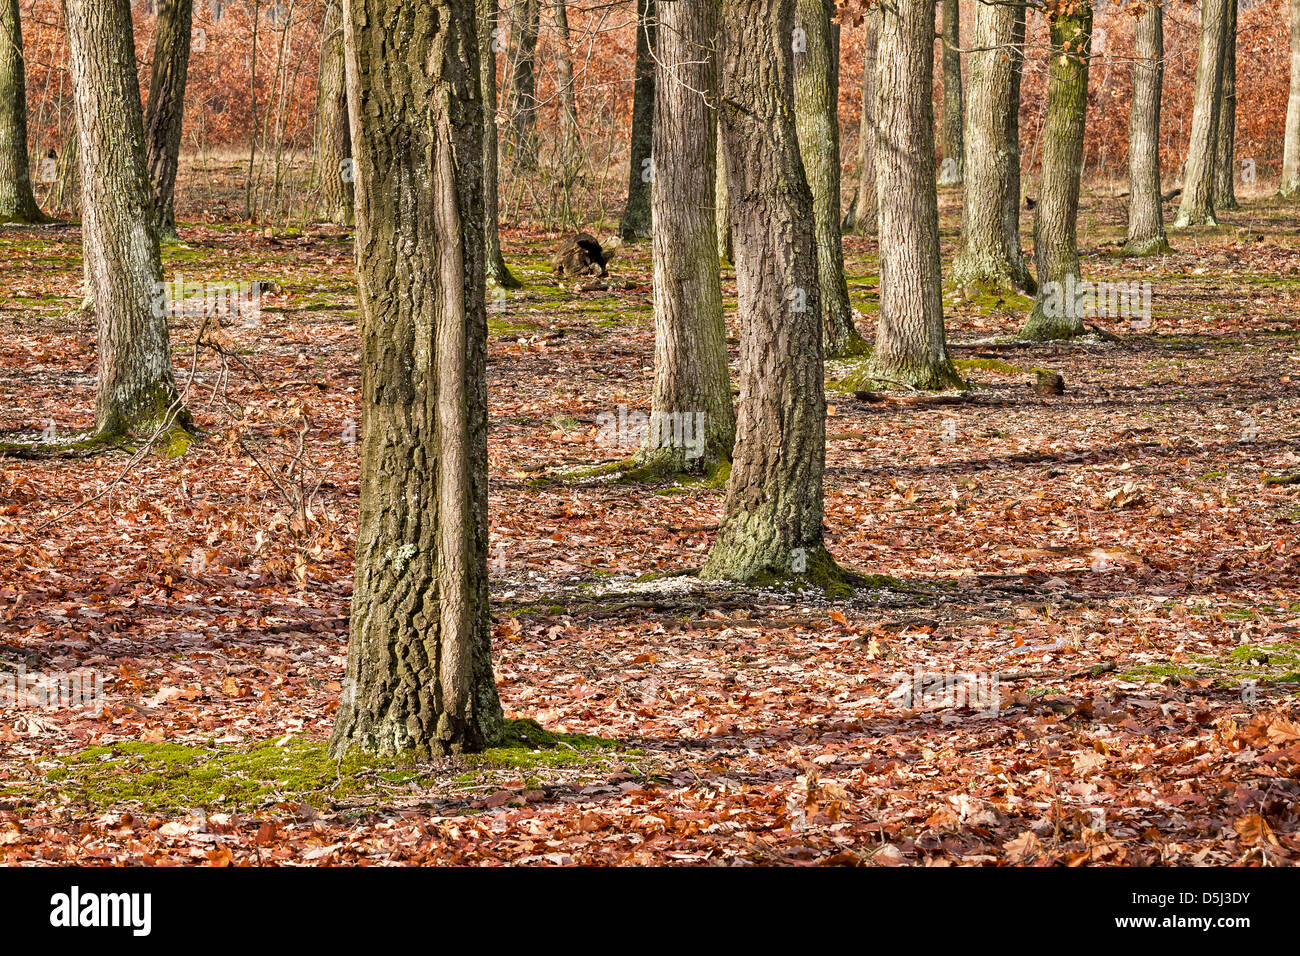 Oak forest at the autumntime - Stock Image